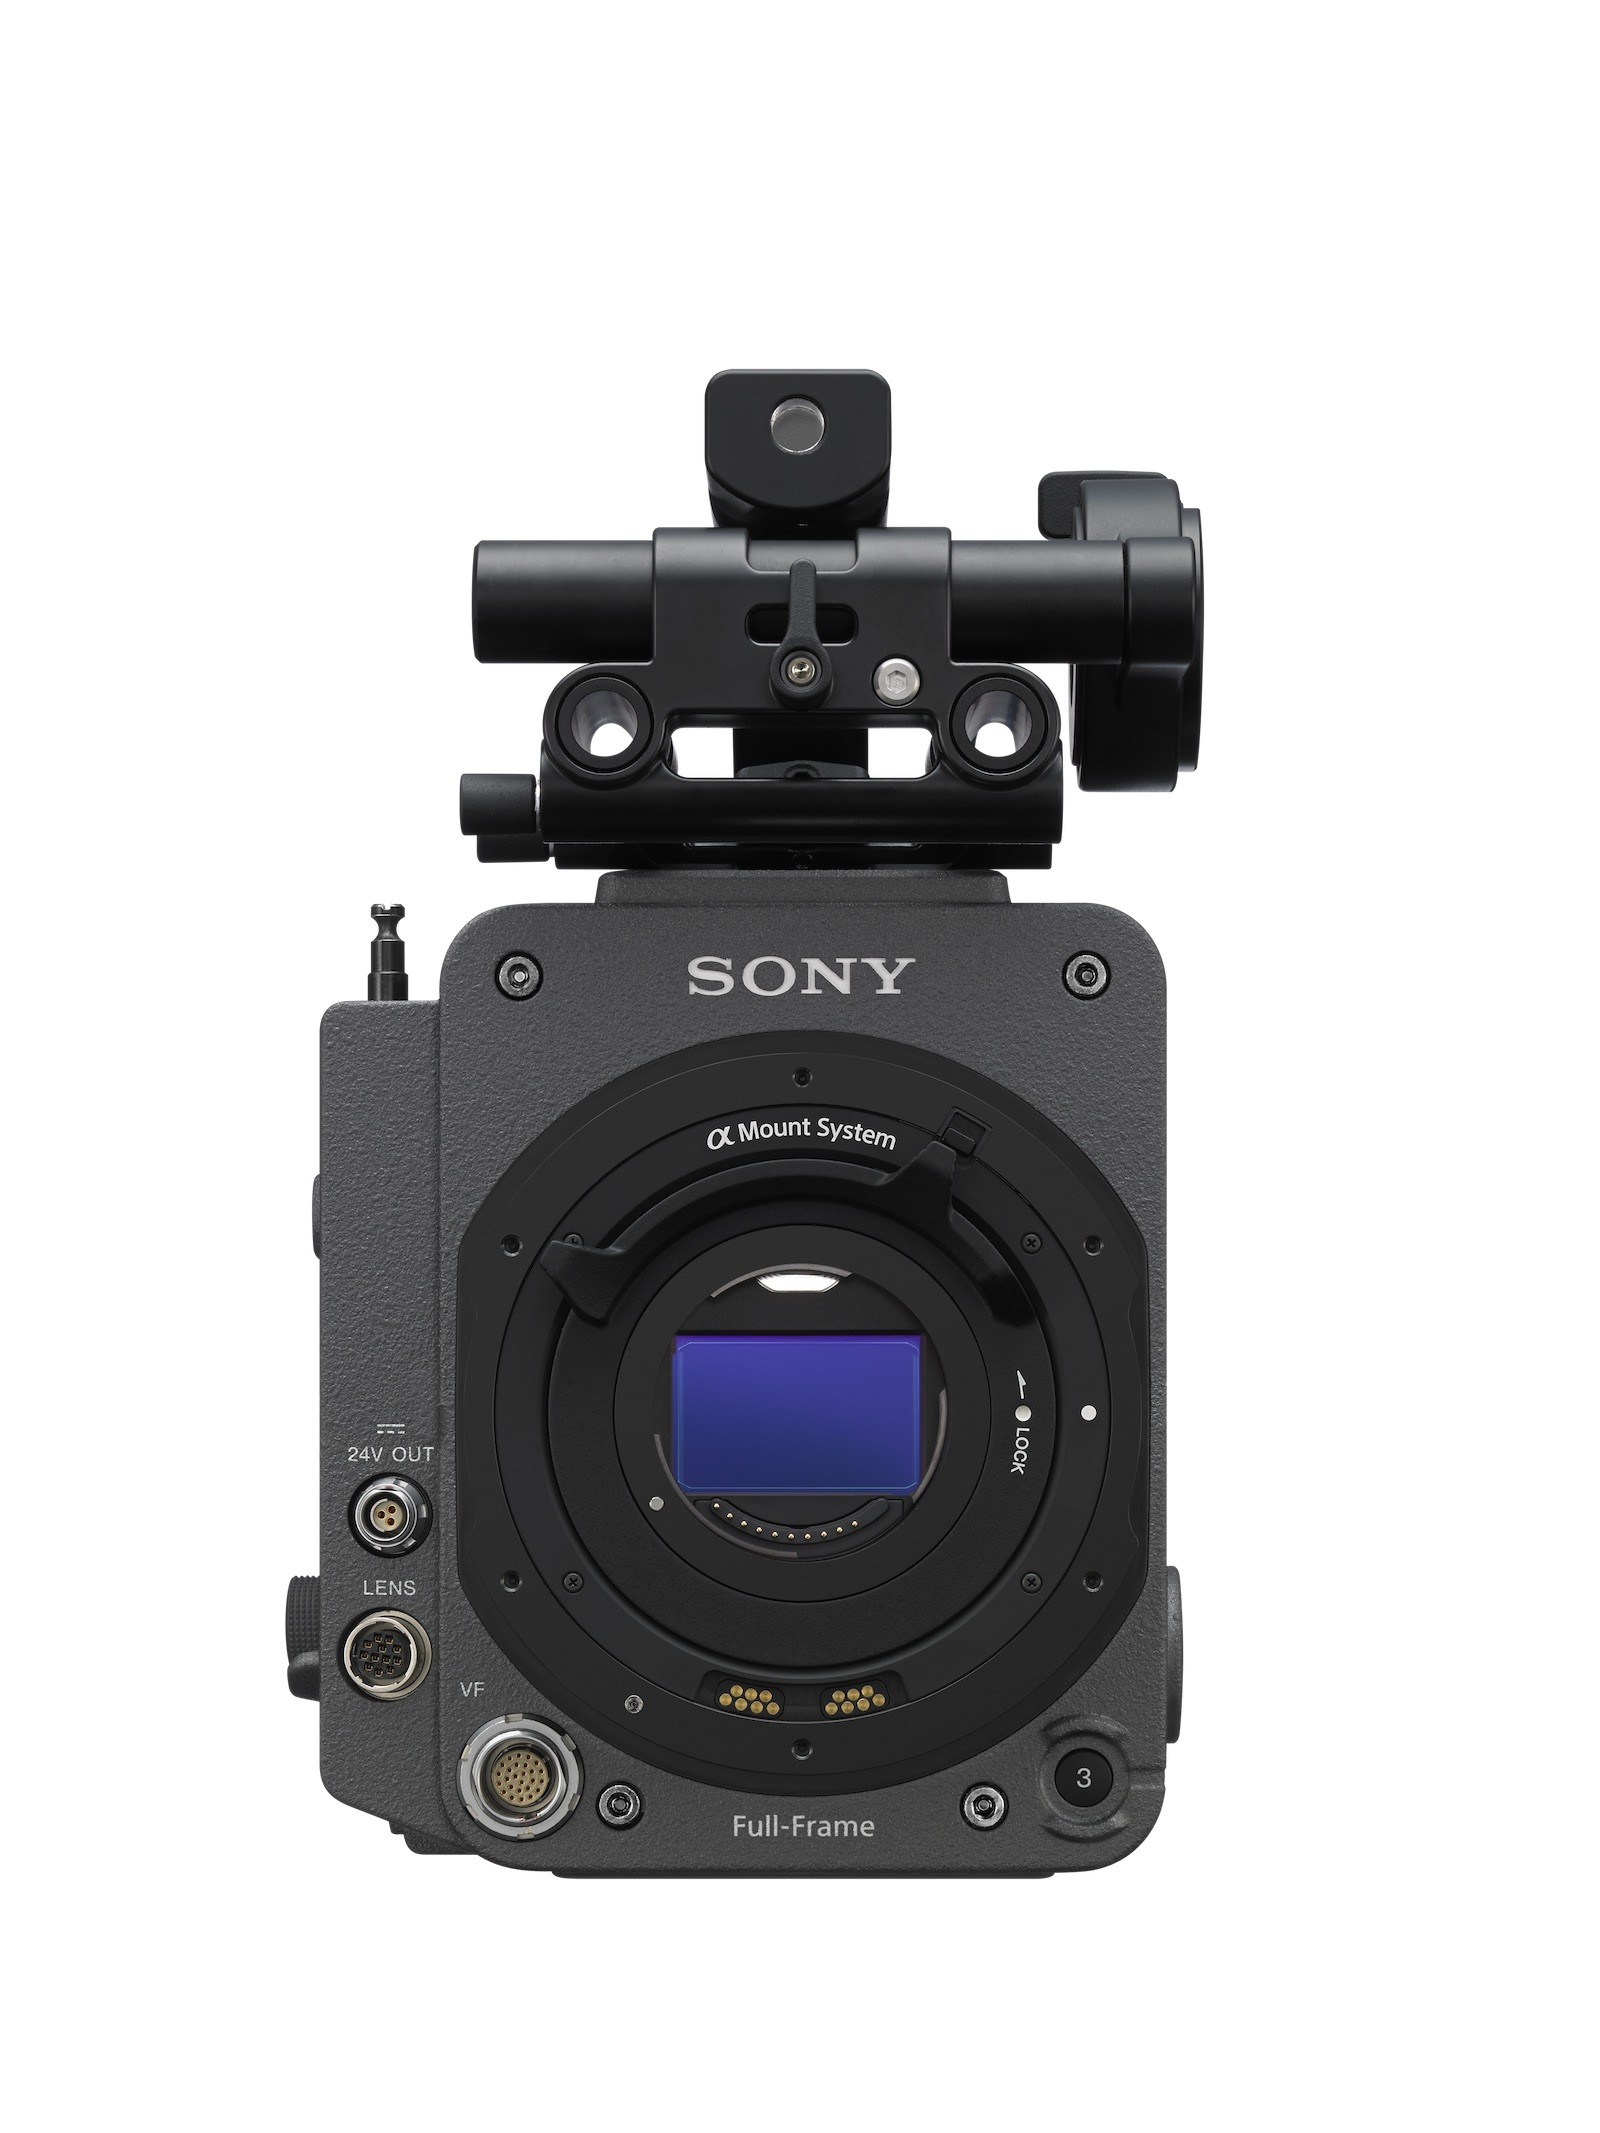 Sony VENICE Shoots at 90FPS in 6K